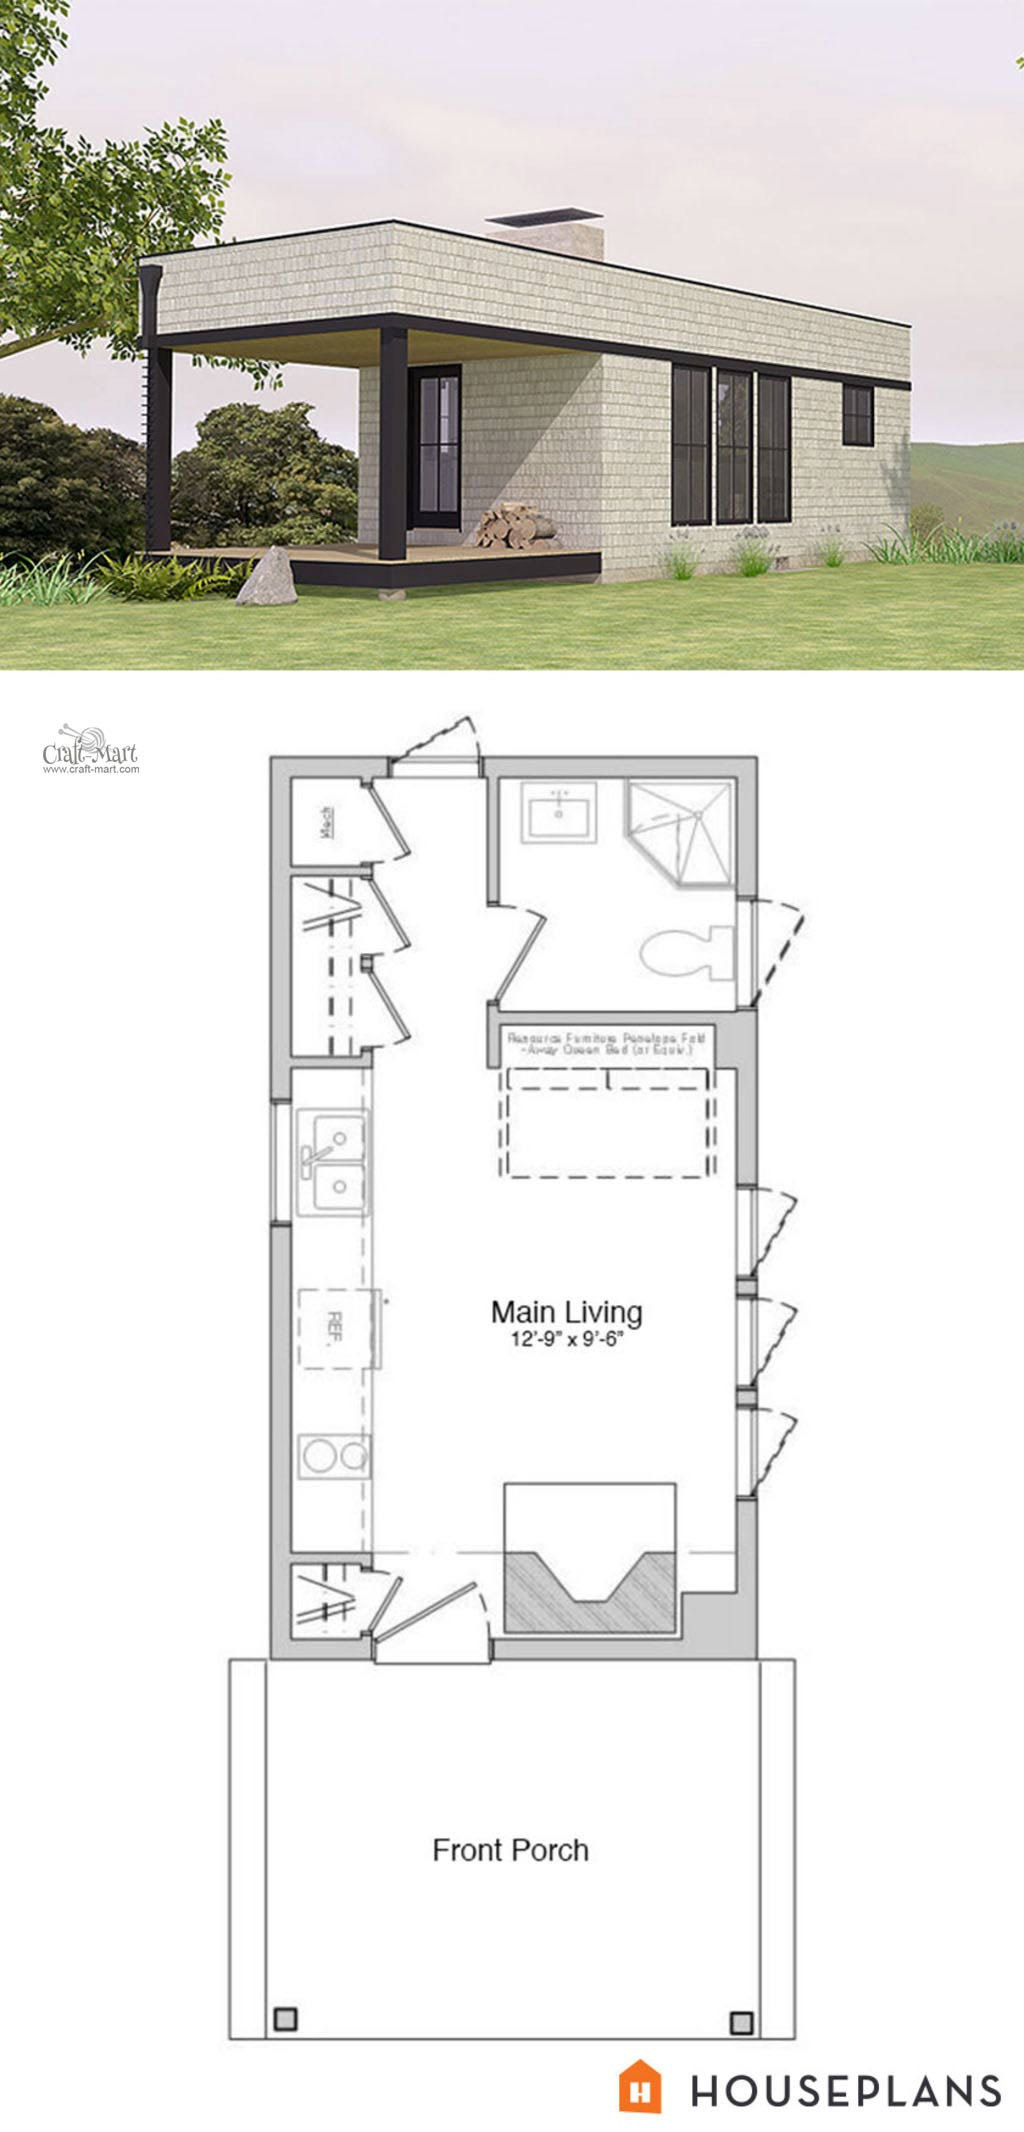 Open Concept Floor Plans for Small Homes Luxury 27 Adorable Free Tiny House Floor Plans Craft Mart